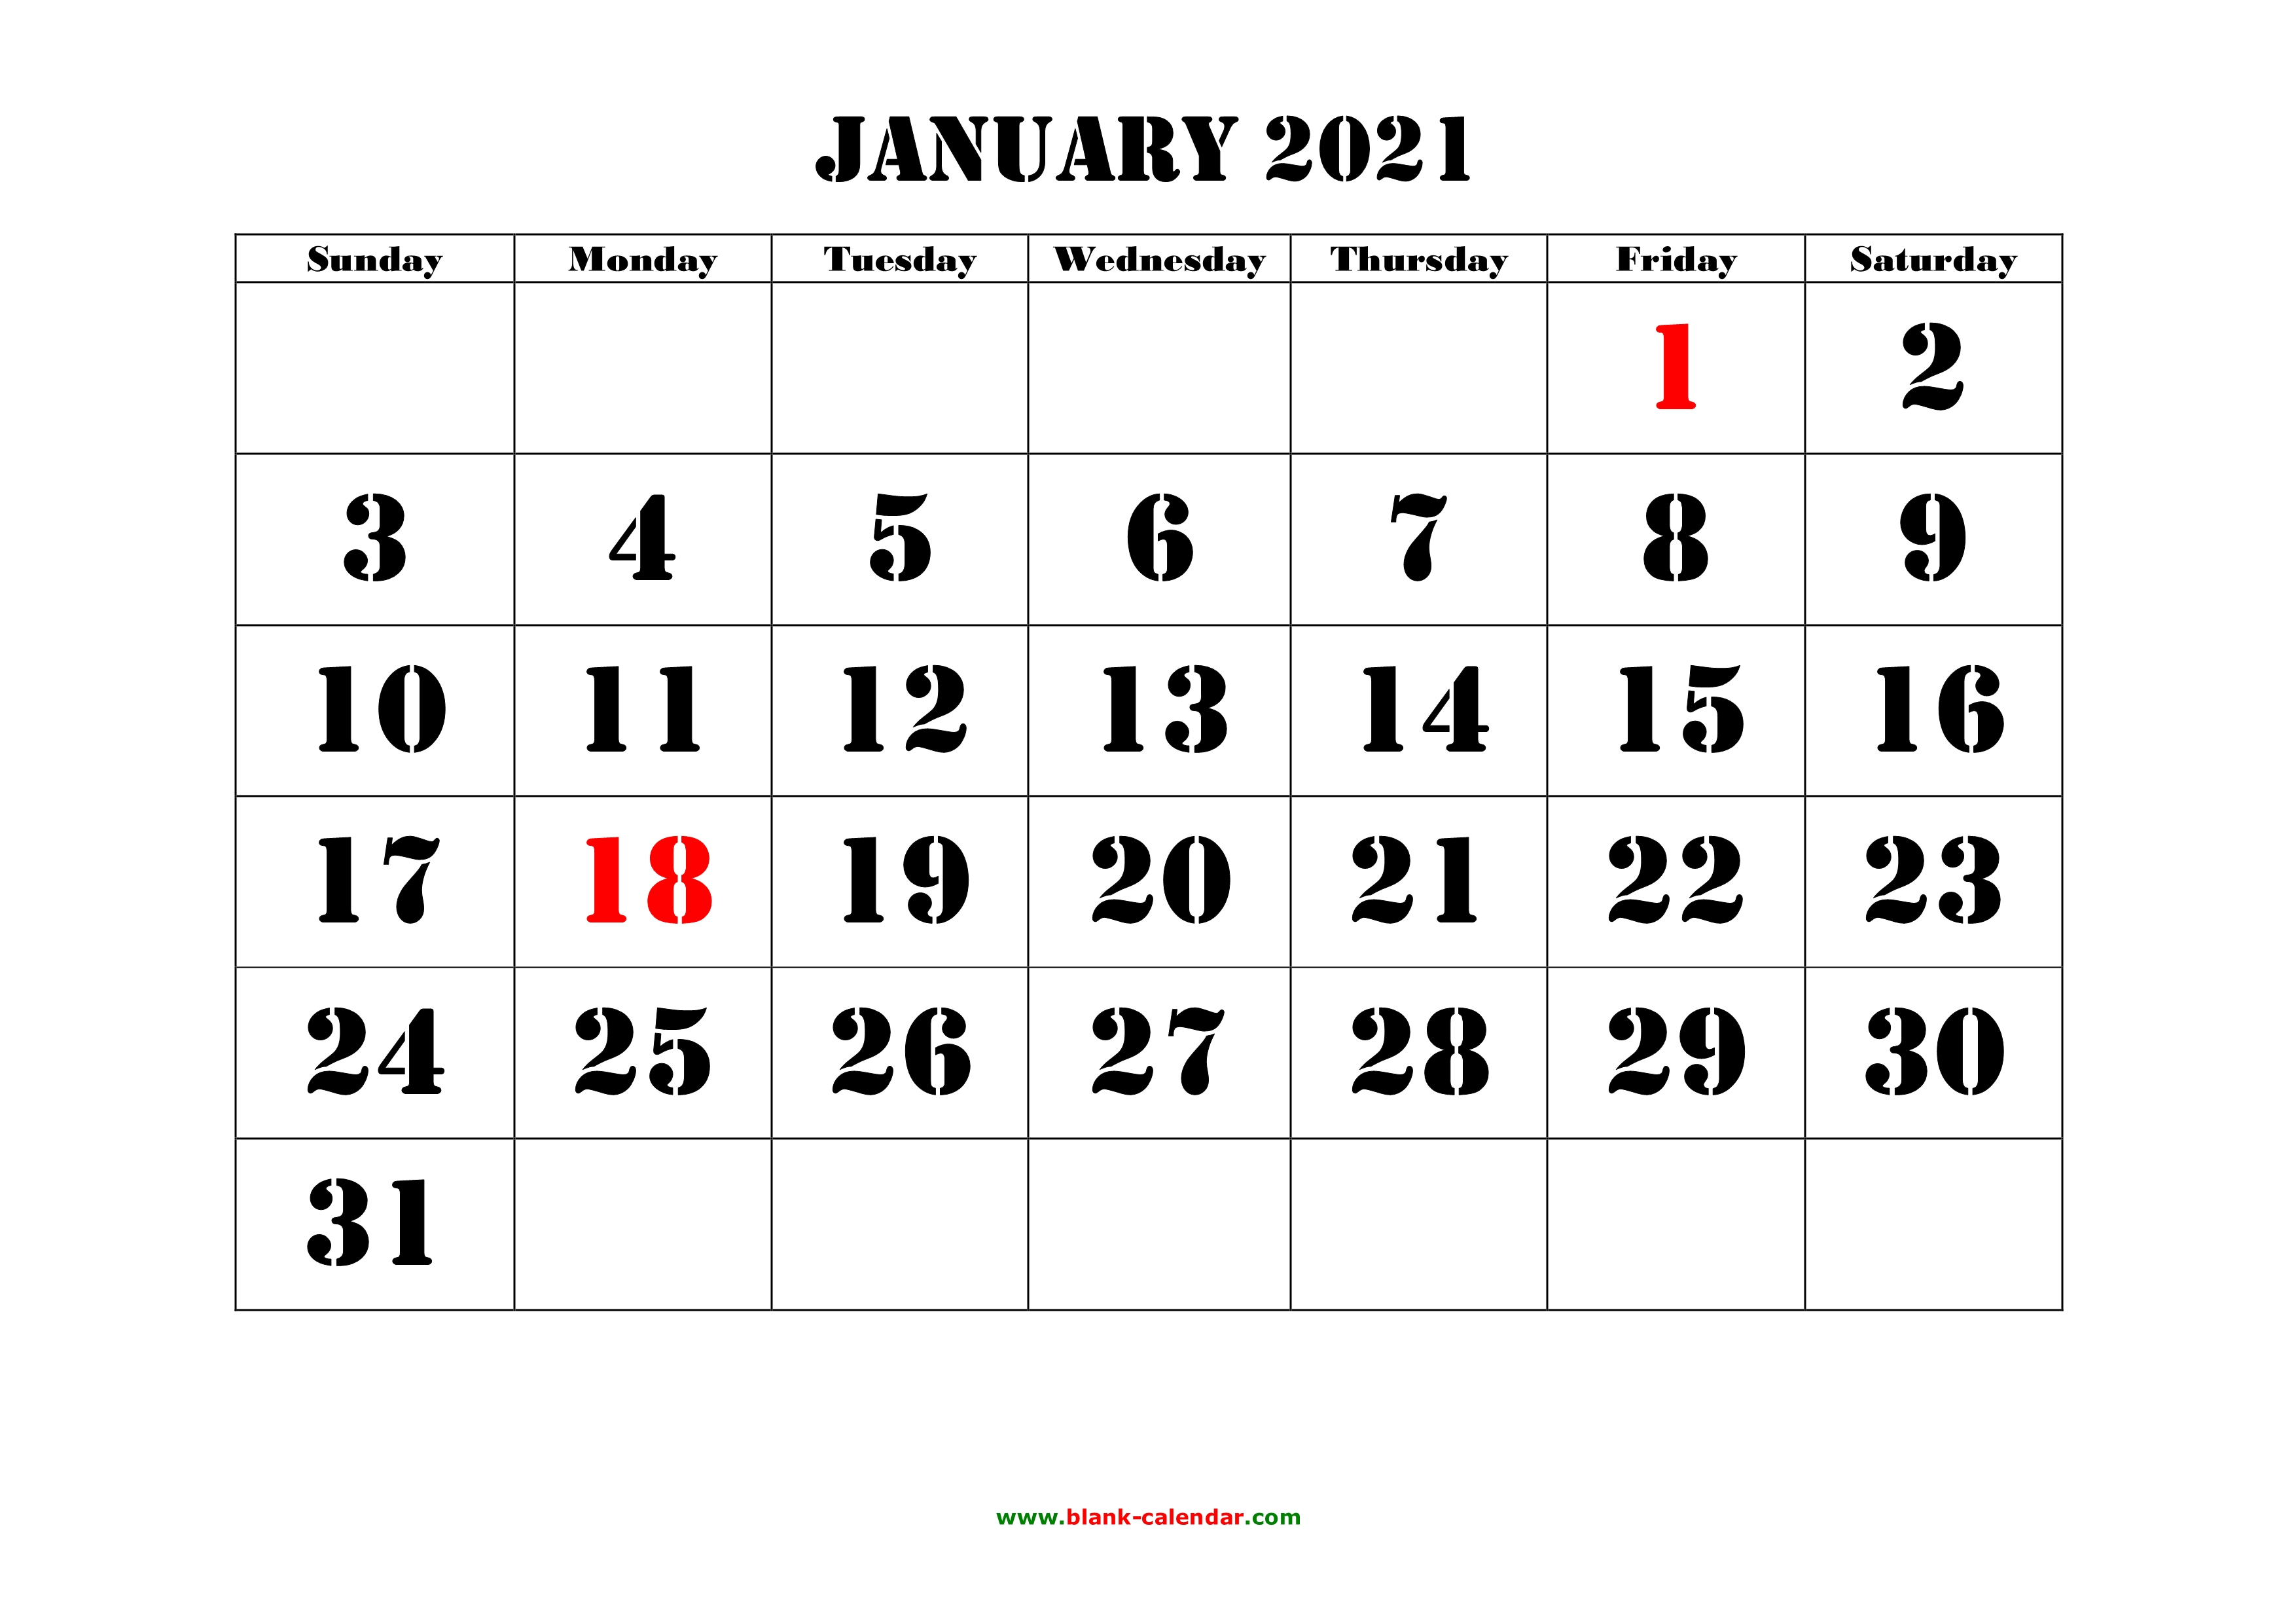 January 2021 Printable Calendar | Free Download Monthly ...